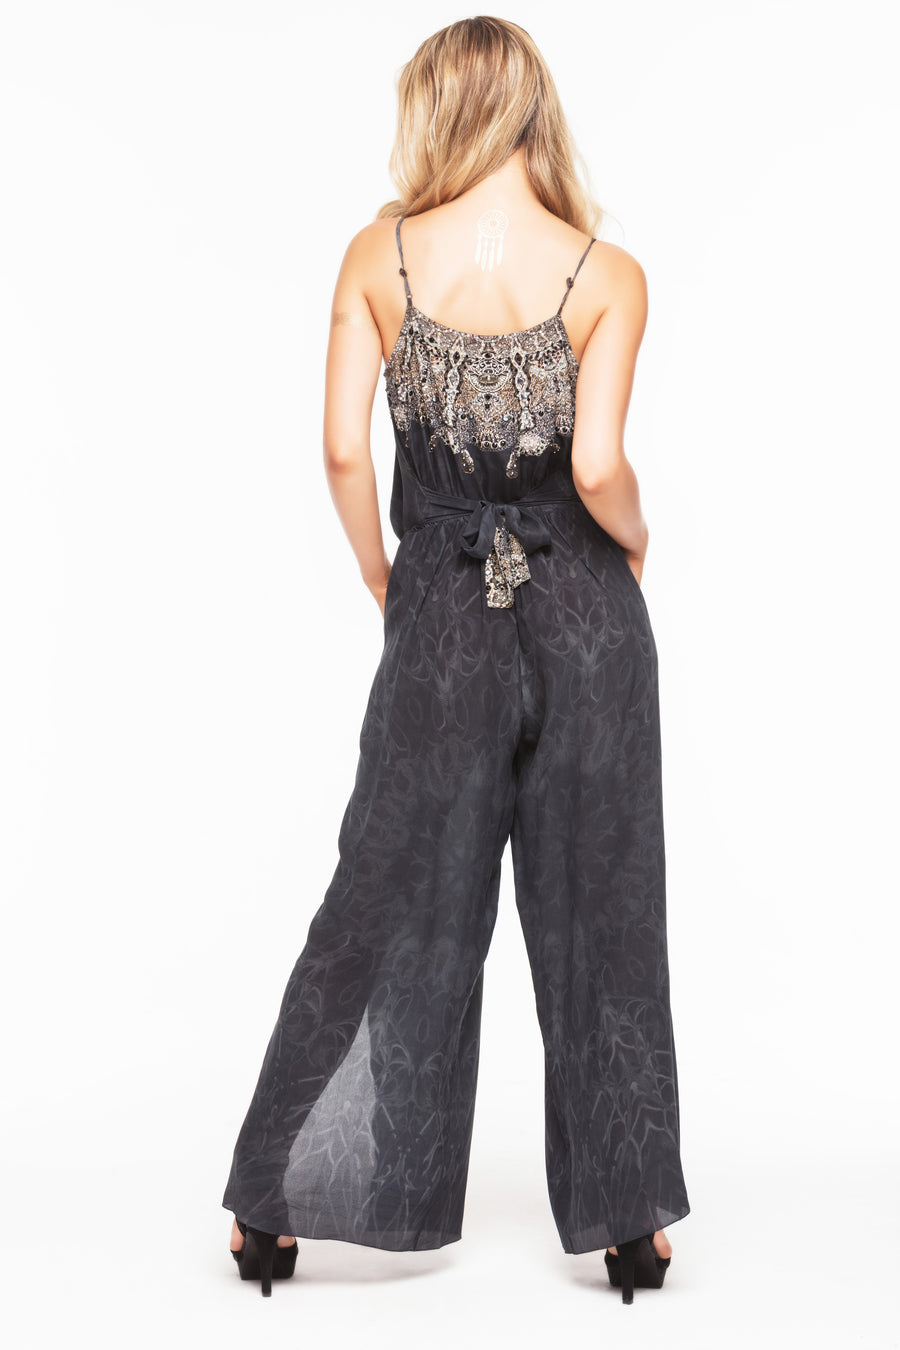 DARK CHEROKEE JUMPSUIT